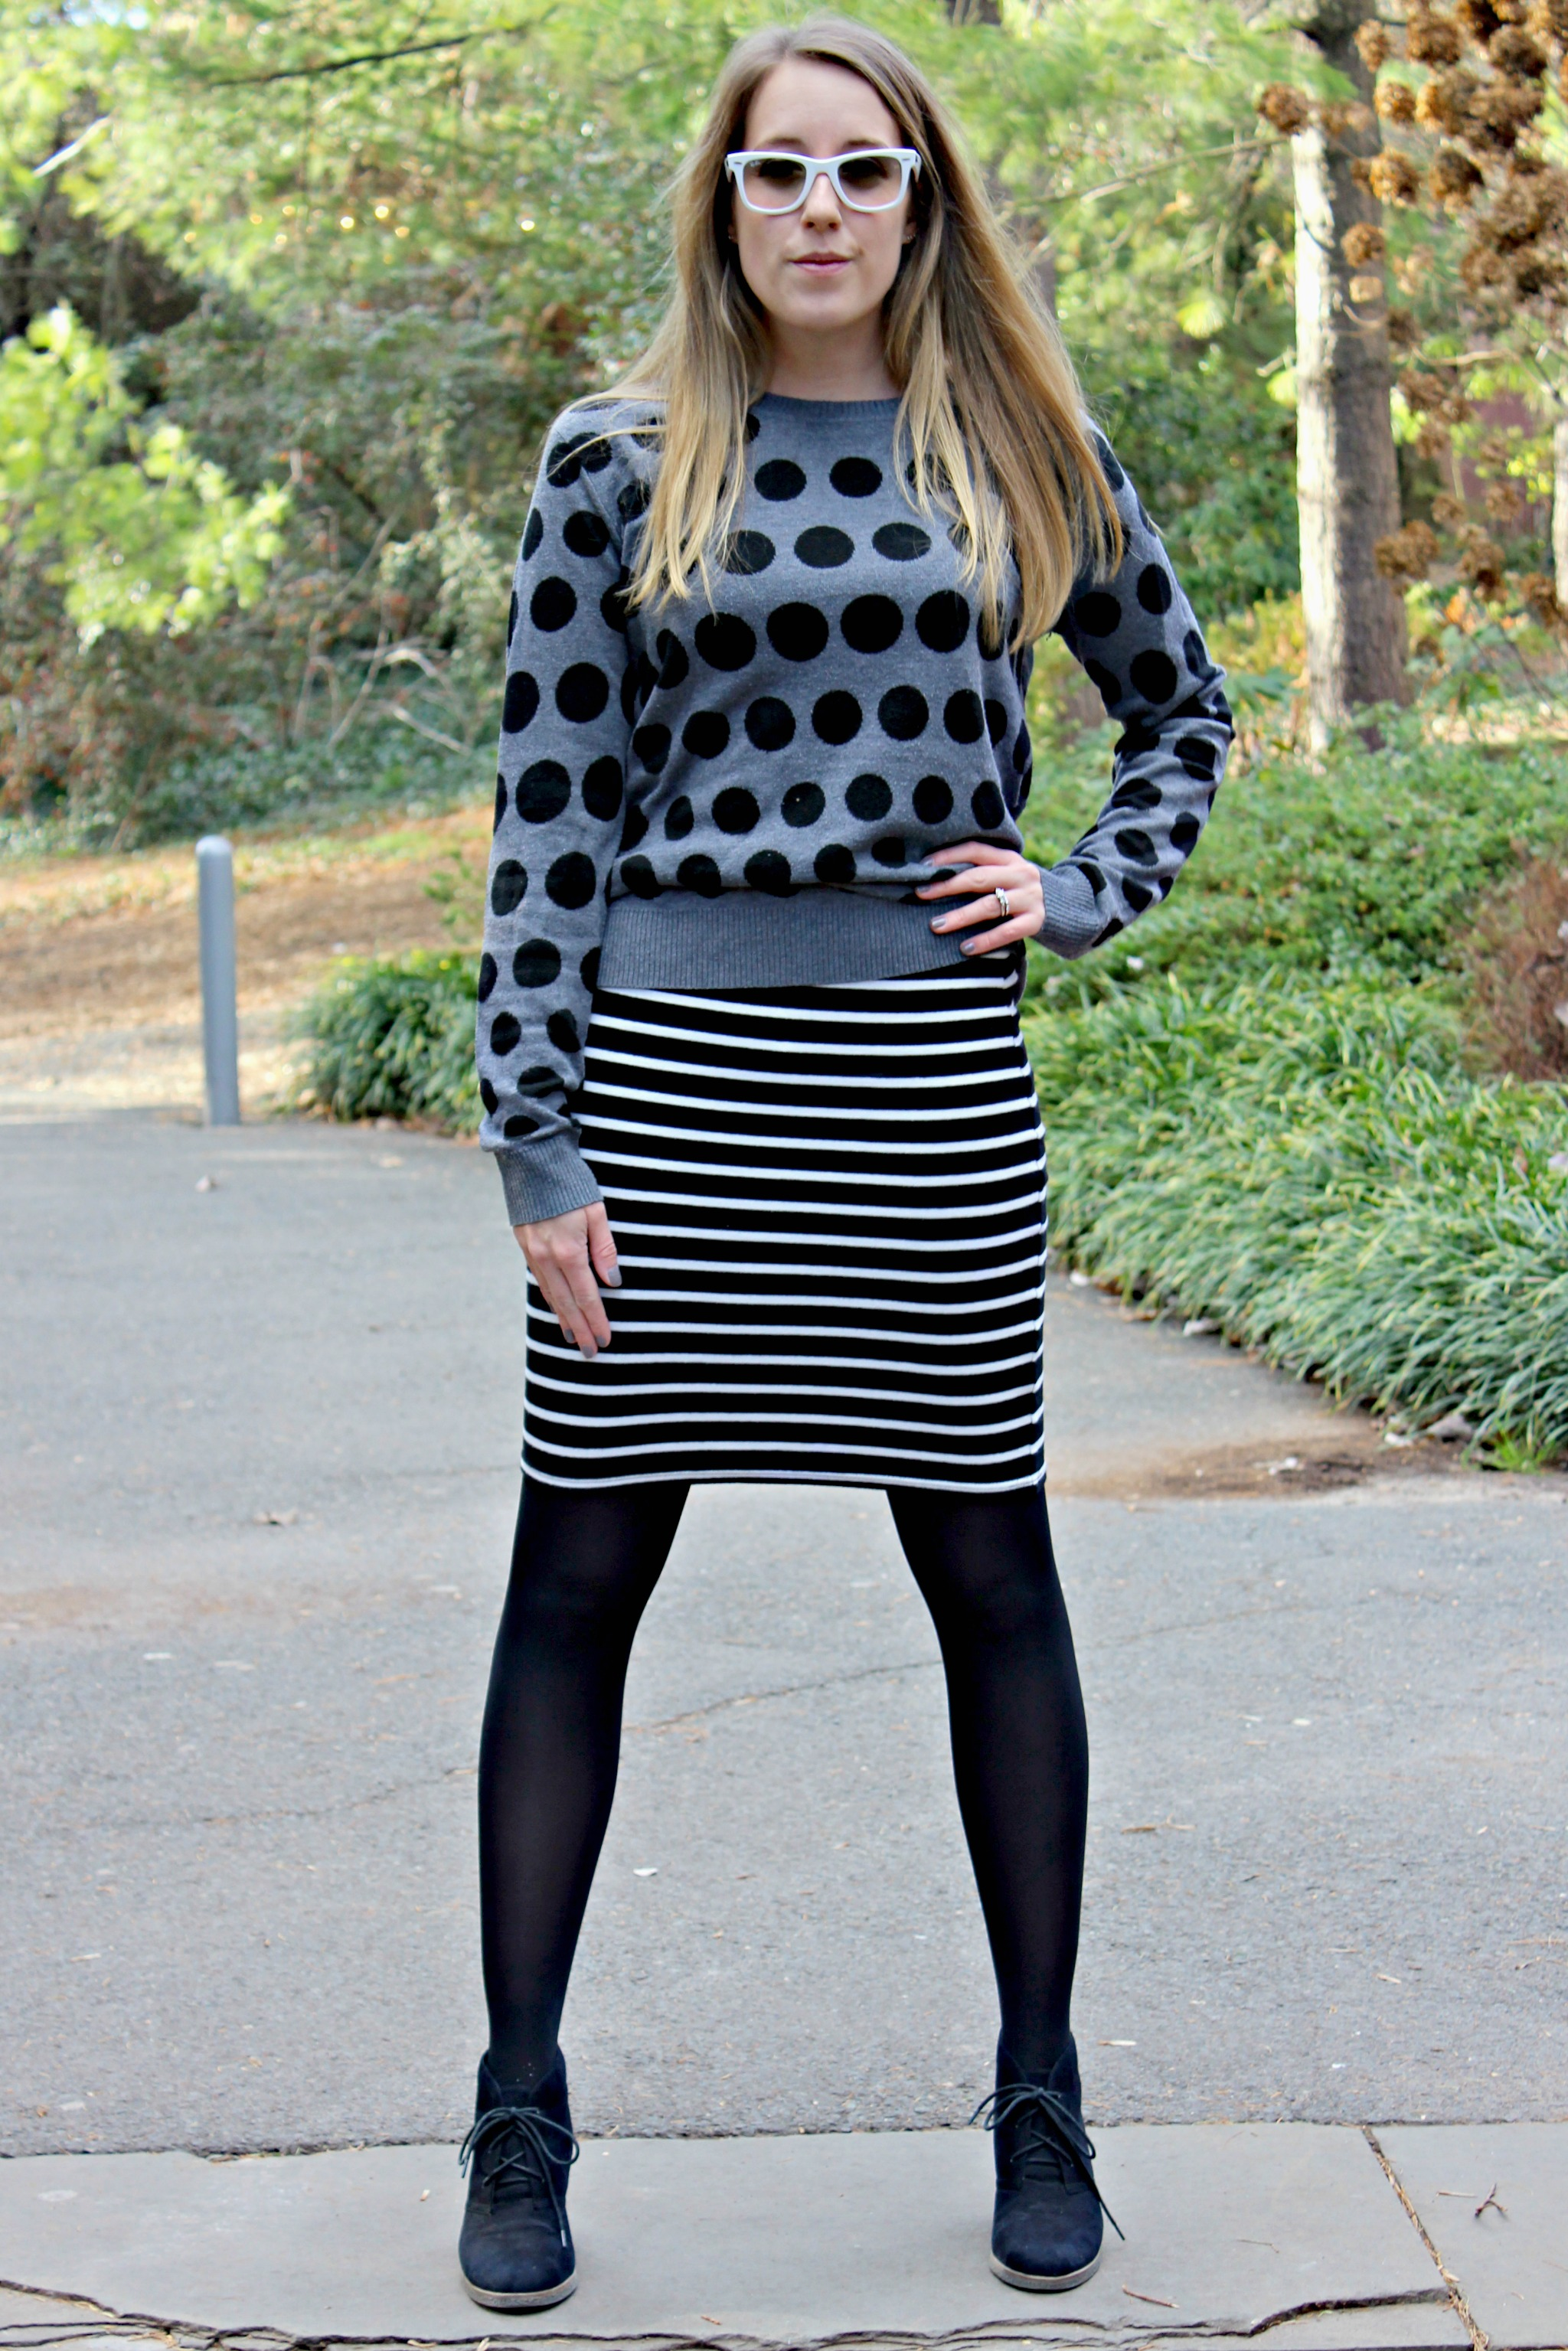 Wearing: Black and Spotty // never be afraid to mix your patterns when it comes to mixing black and grey